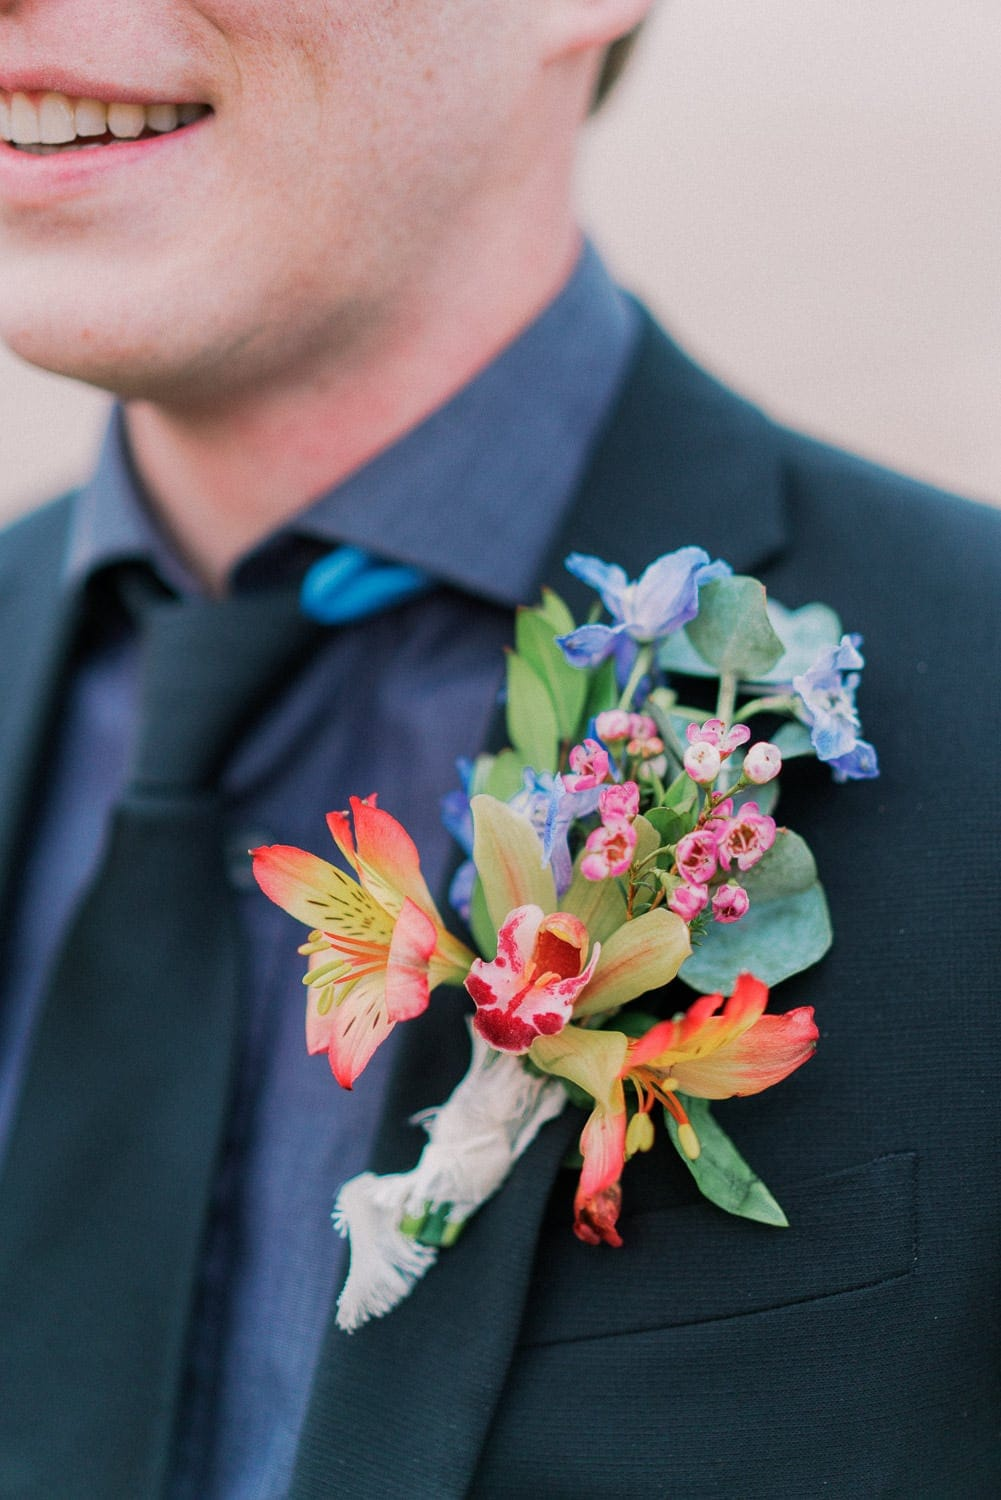 cymbidium orchid boutonniere on a groom's lapel during an elopement